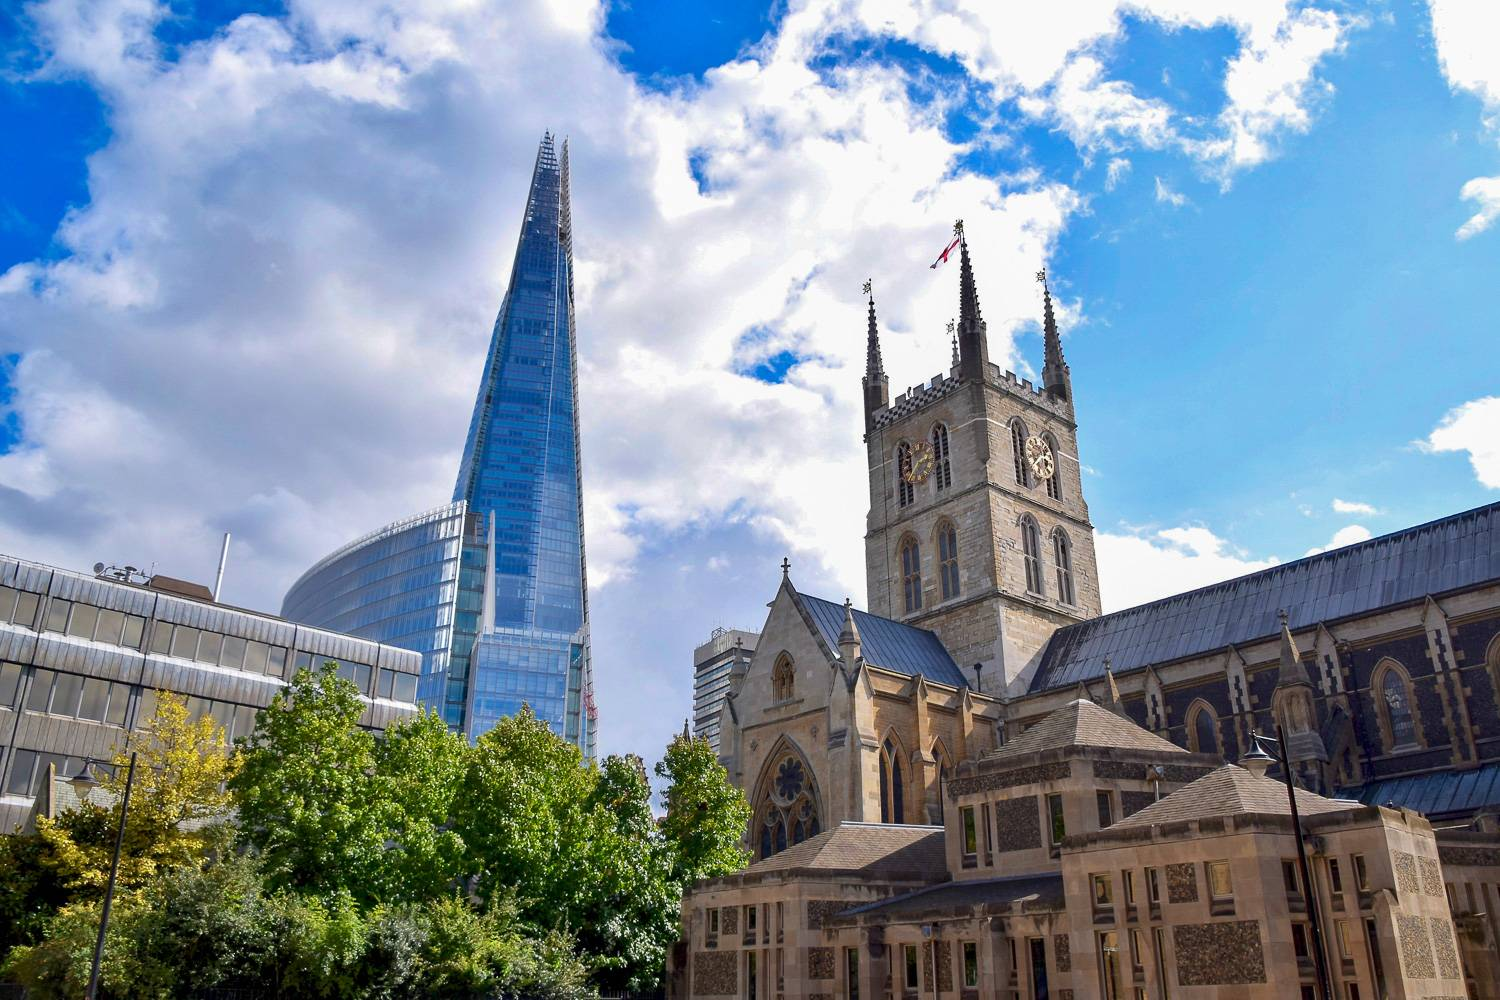 Photo du Shard depuis le quartier londonien de Southwark.